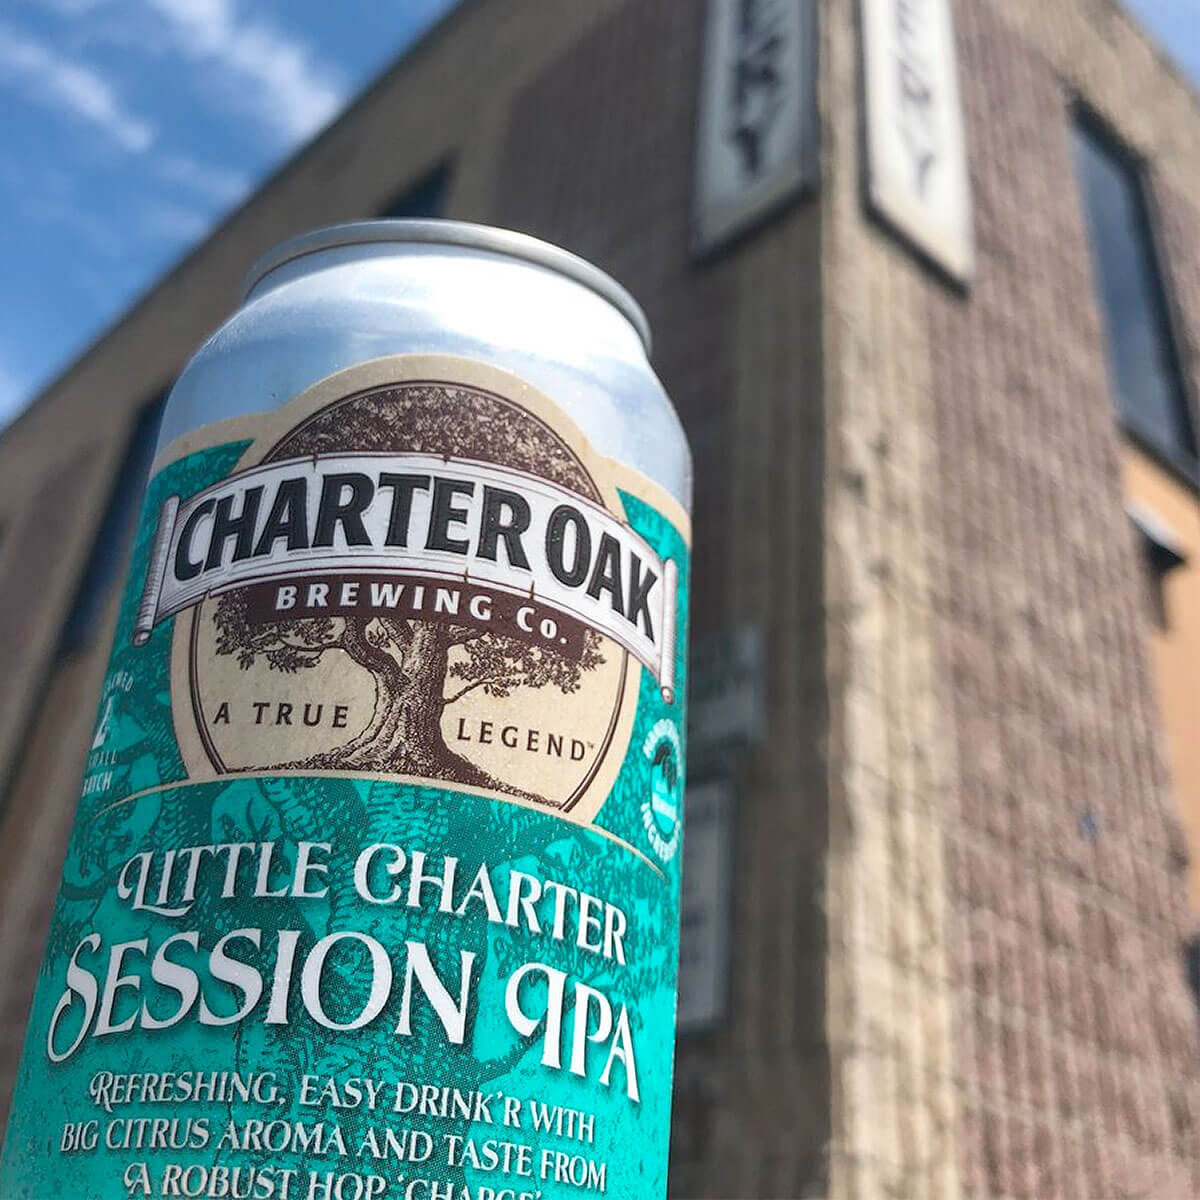 Charter Oak Brewing Company has added the Little Charter Session IPA to its core lineup and at 4.7% ABV, this well-balanced SIPA is a real easy drinker.